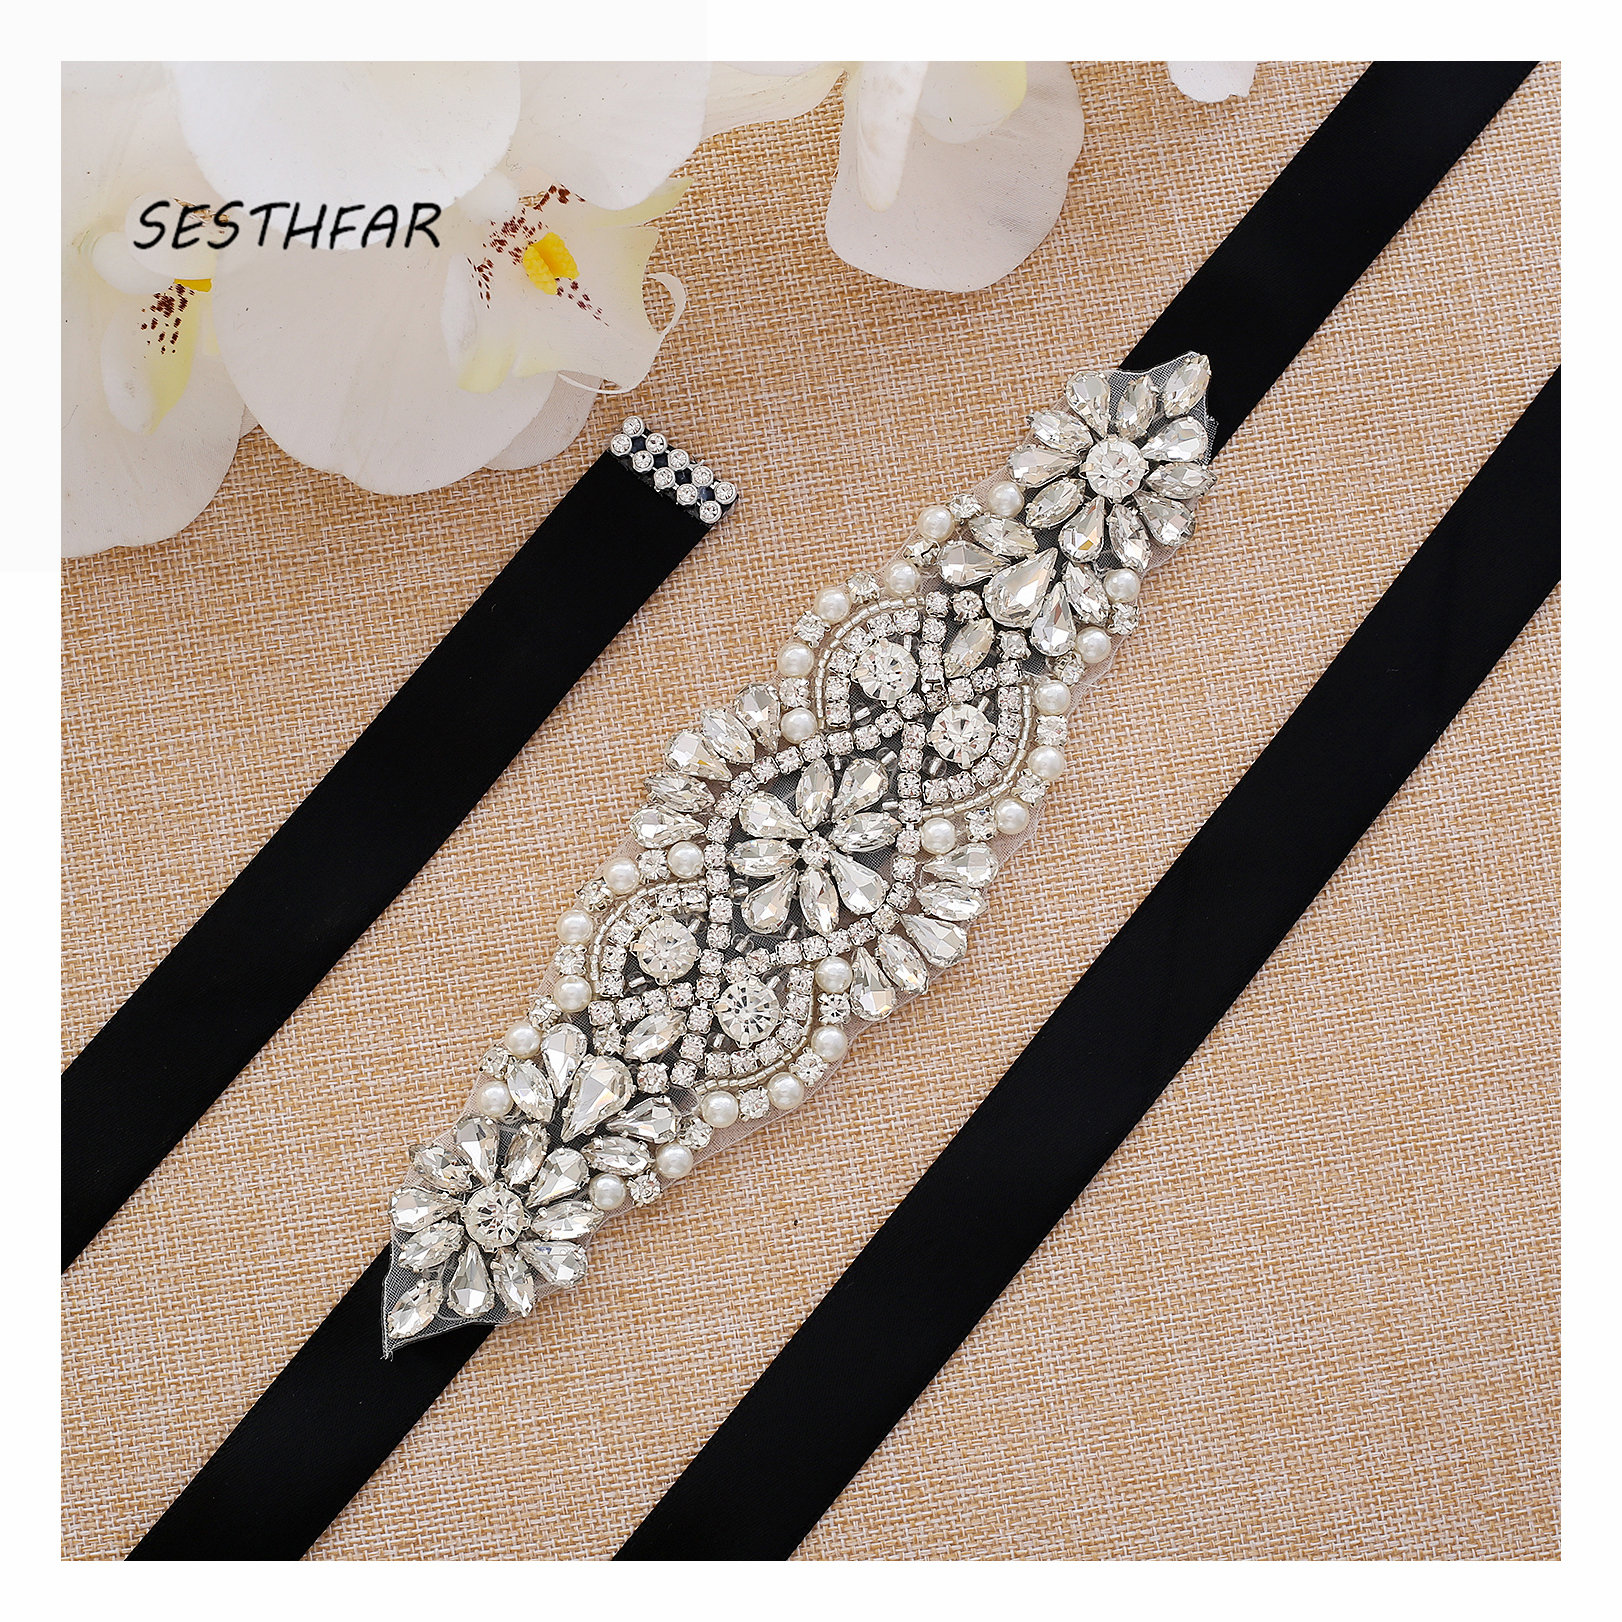 Crystal bridal belt Silver Wedding Belt With Rhinestones Bridal Sash For Wedding Party Dress Handmade J103S(China)